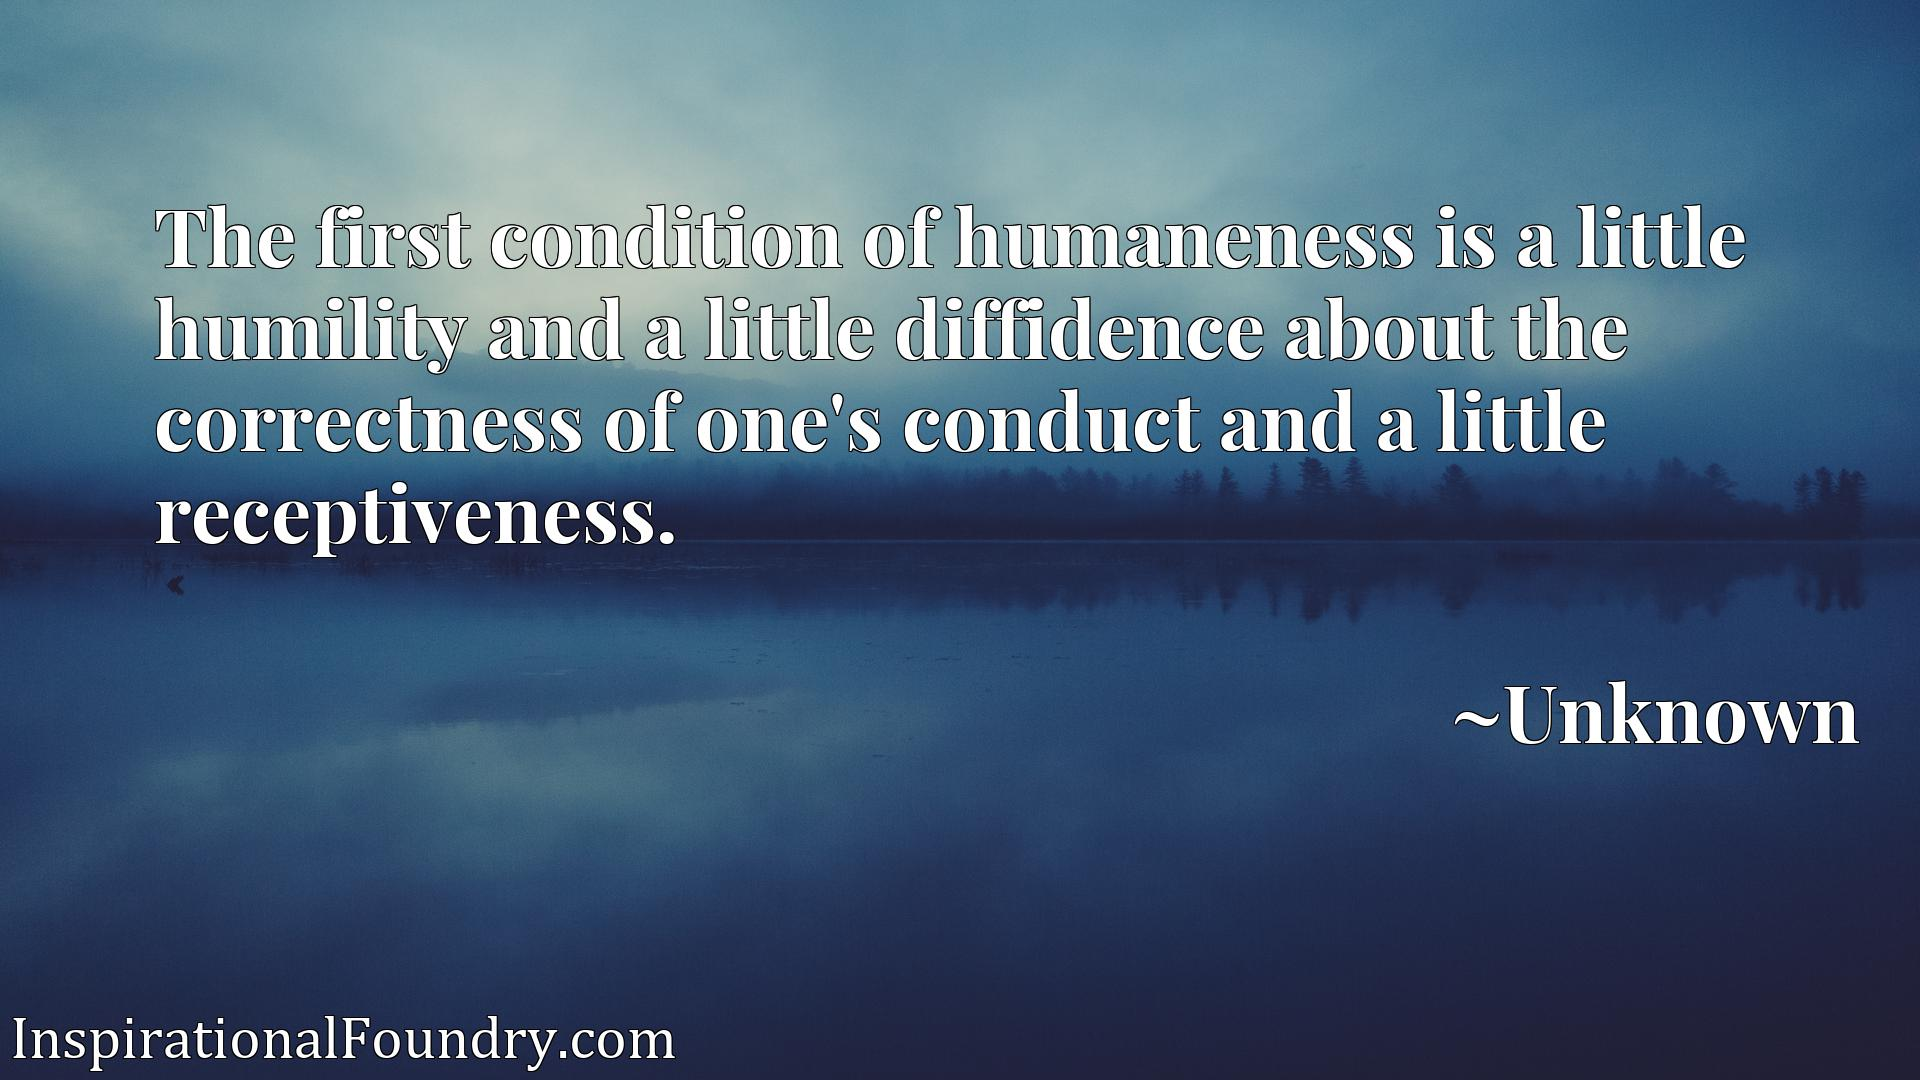 Quote Picture :The first condition of humaneness is a little humility and a little diffidence about the correctness of one's conduct and a little receptiveness.